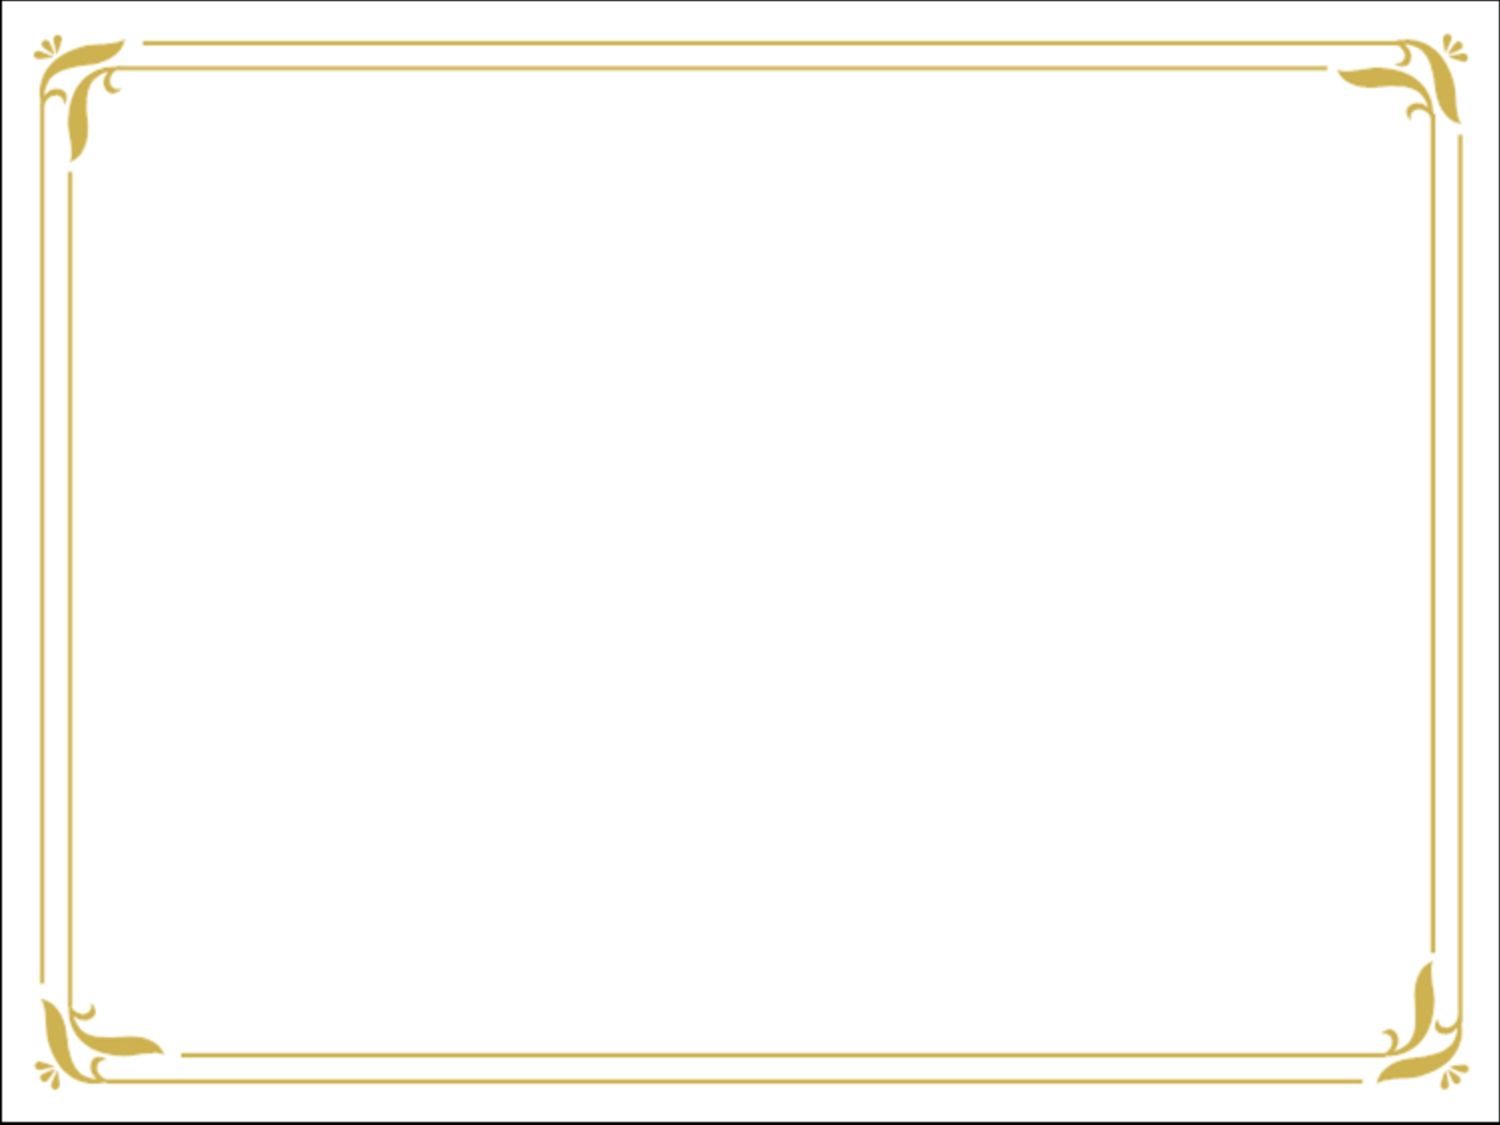 Download simple gold certificate border ppt template from the above download simple gold certificate border ppt template from the above resolutions if you don toneelgroepblik Image collections